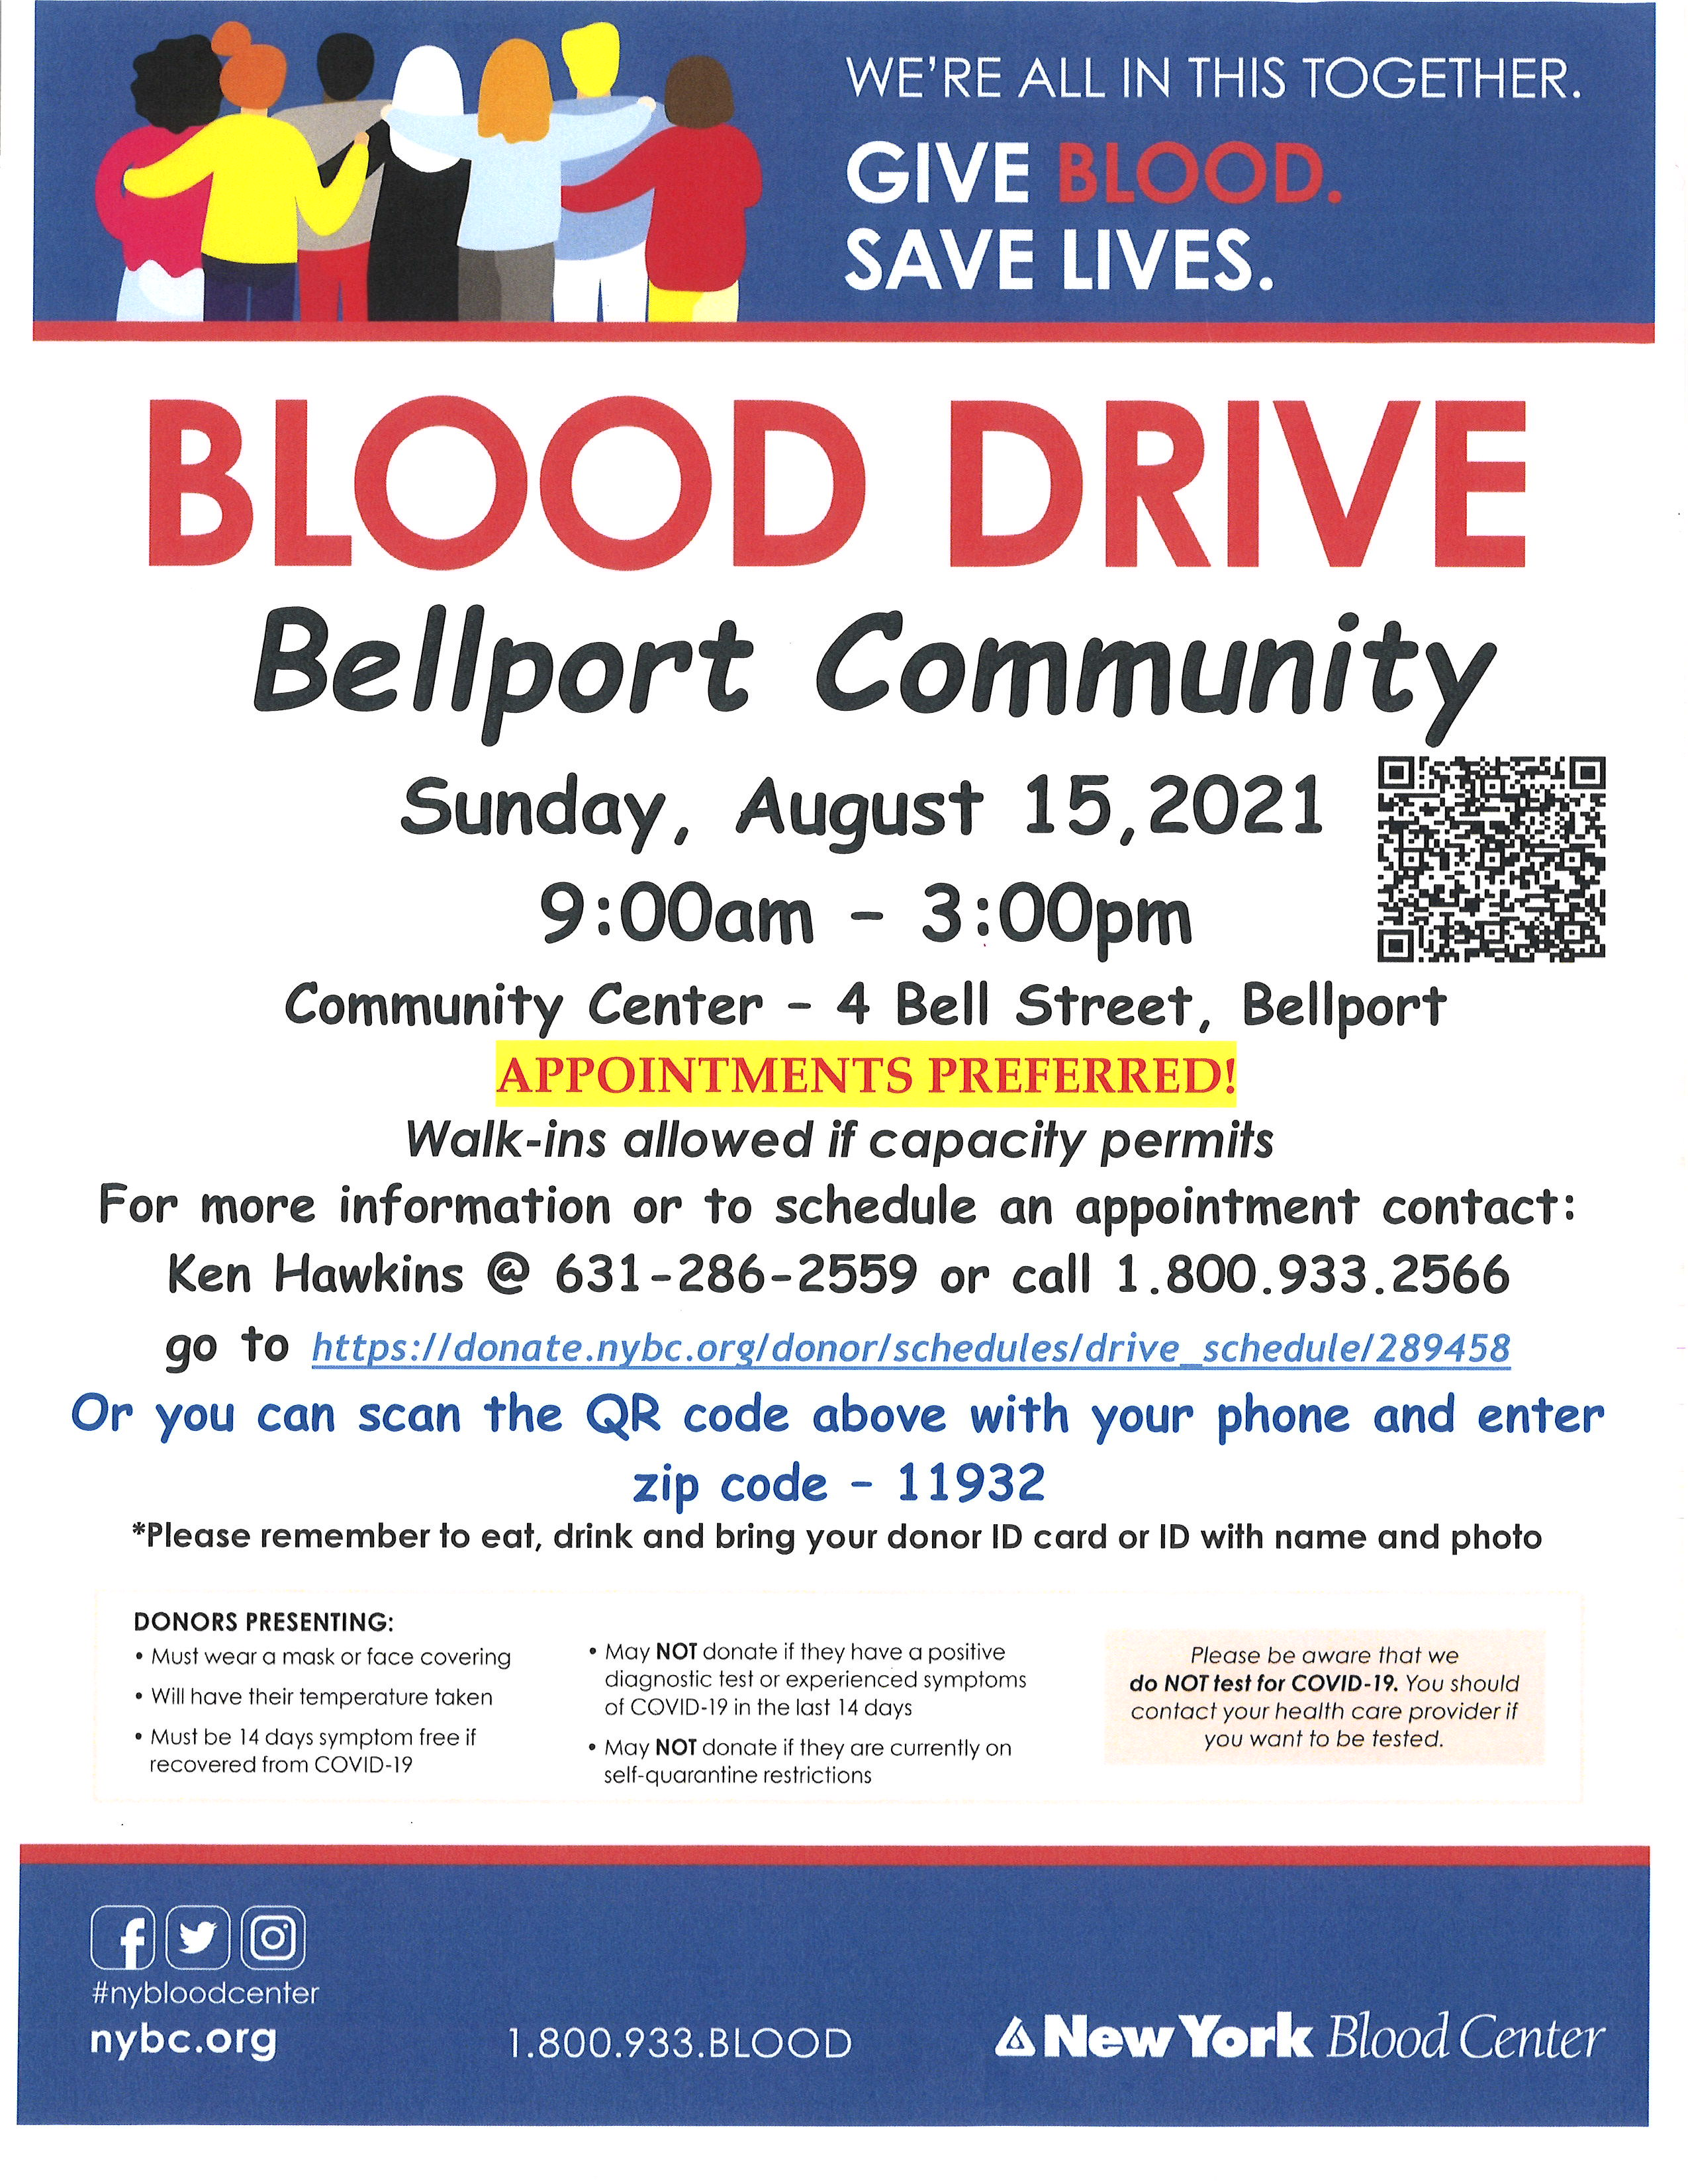 Blood Drive - Sunday, August 15, 2021 - 9:00 am until 3:00 pm - APPOINTMENTS PREFERRED